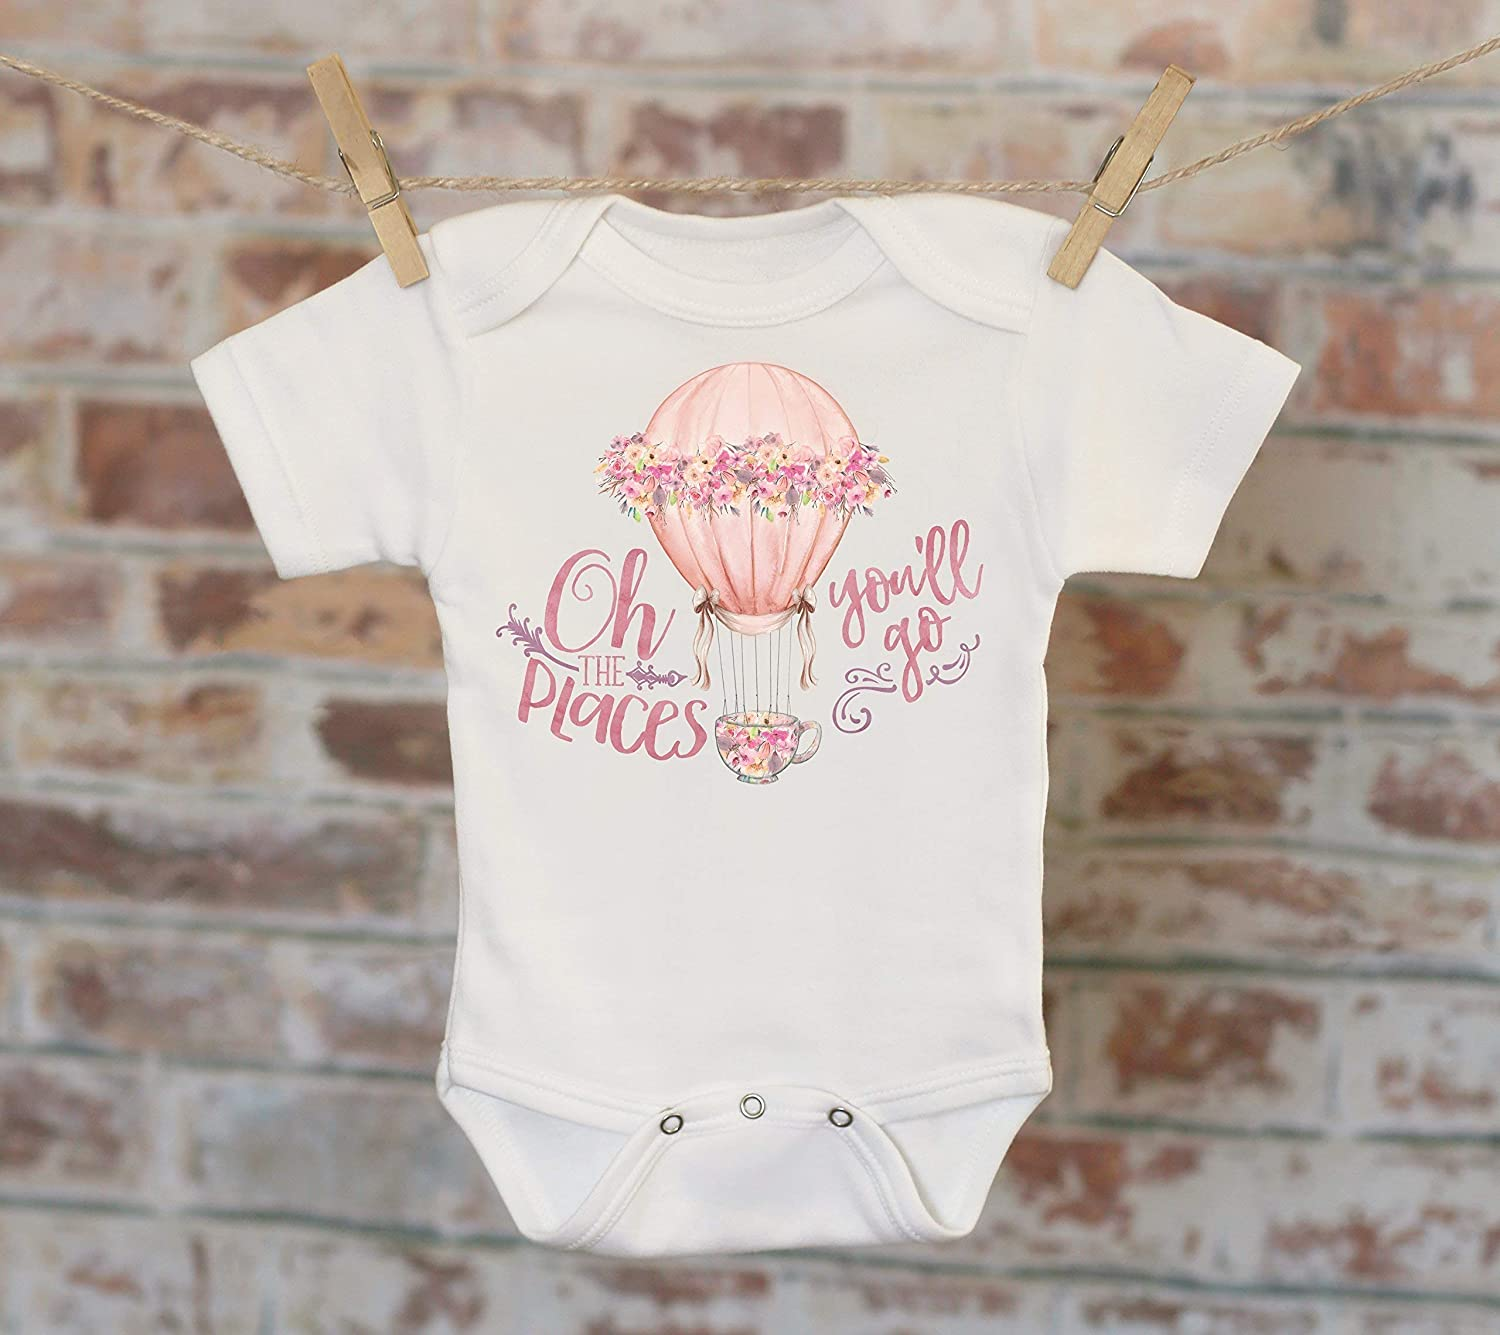 Oh The Places You'll Go Hot Air Balloon Onesie®, Boho Onesie, Funny Onesie, Cute Baby Bodysuit, Cute Onesie, Boho Baby Onesie